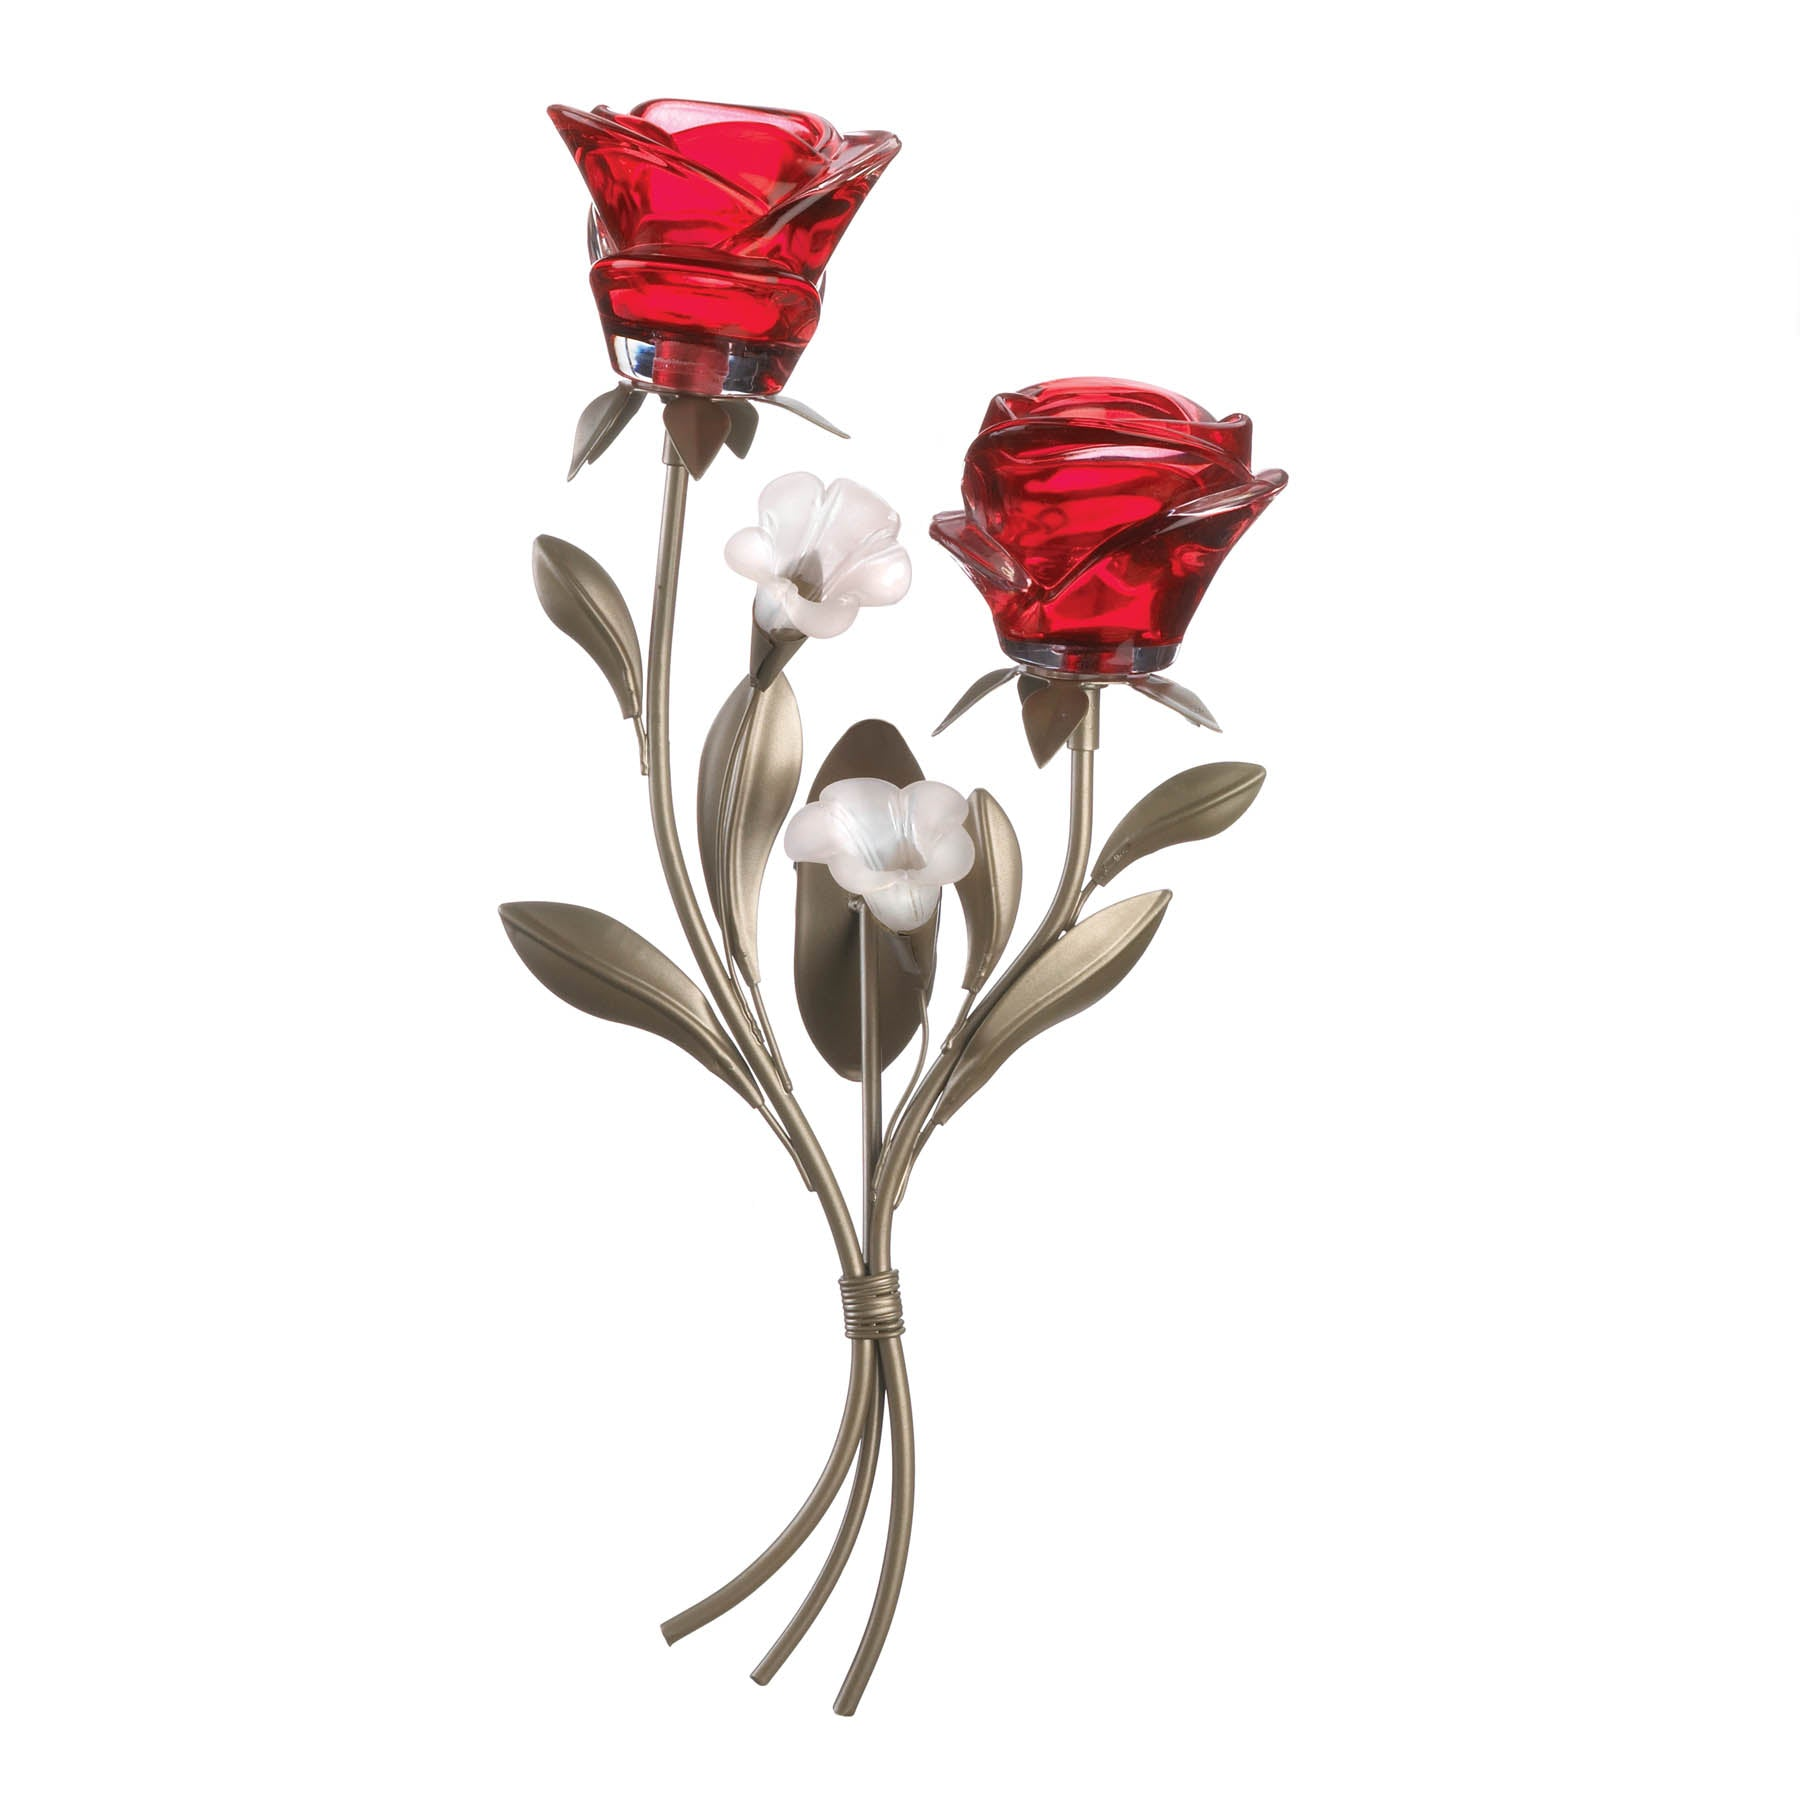 Gallery of Light Romantic Roses Wall Sconce - 10018784